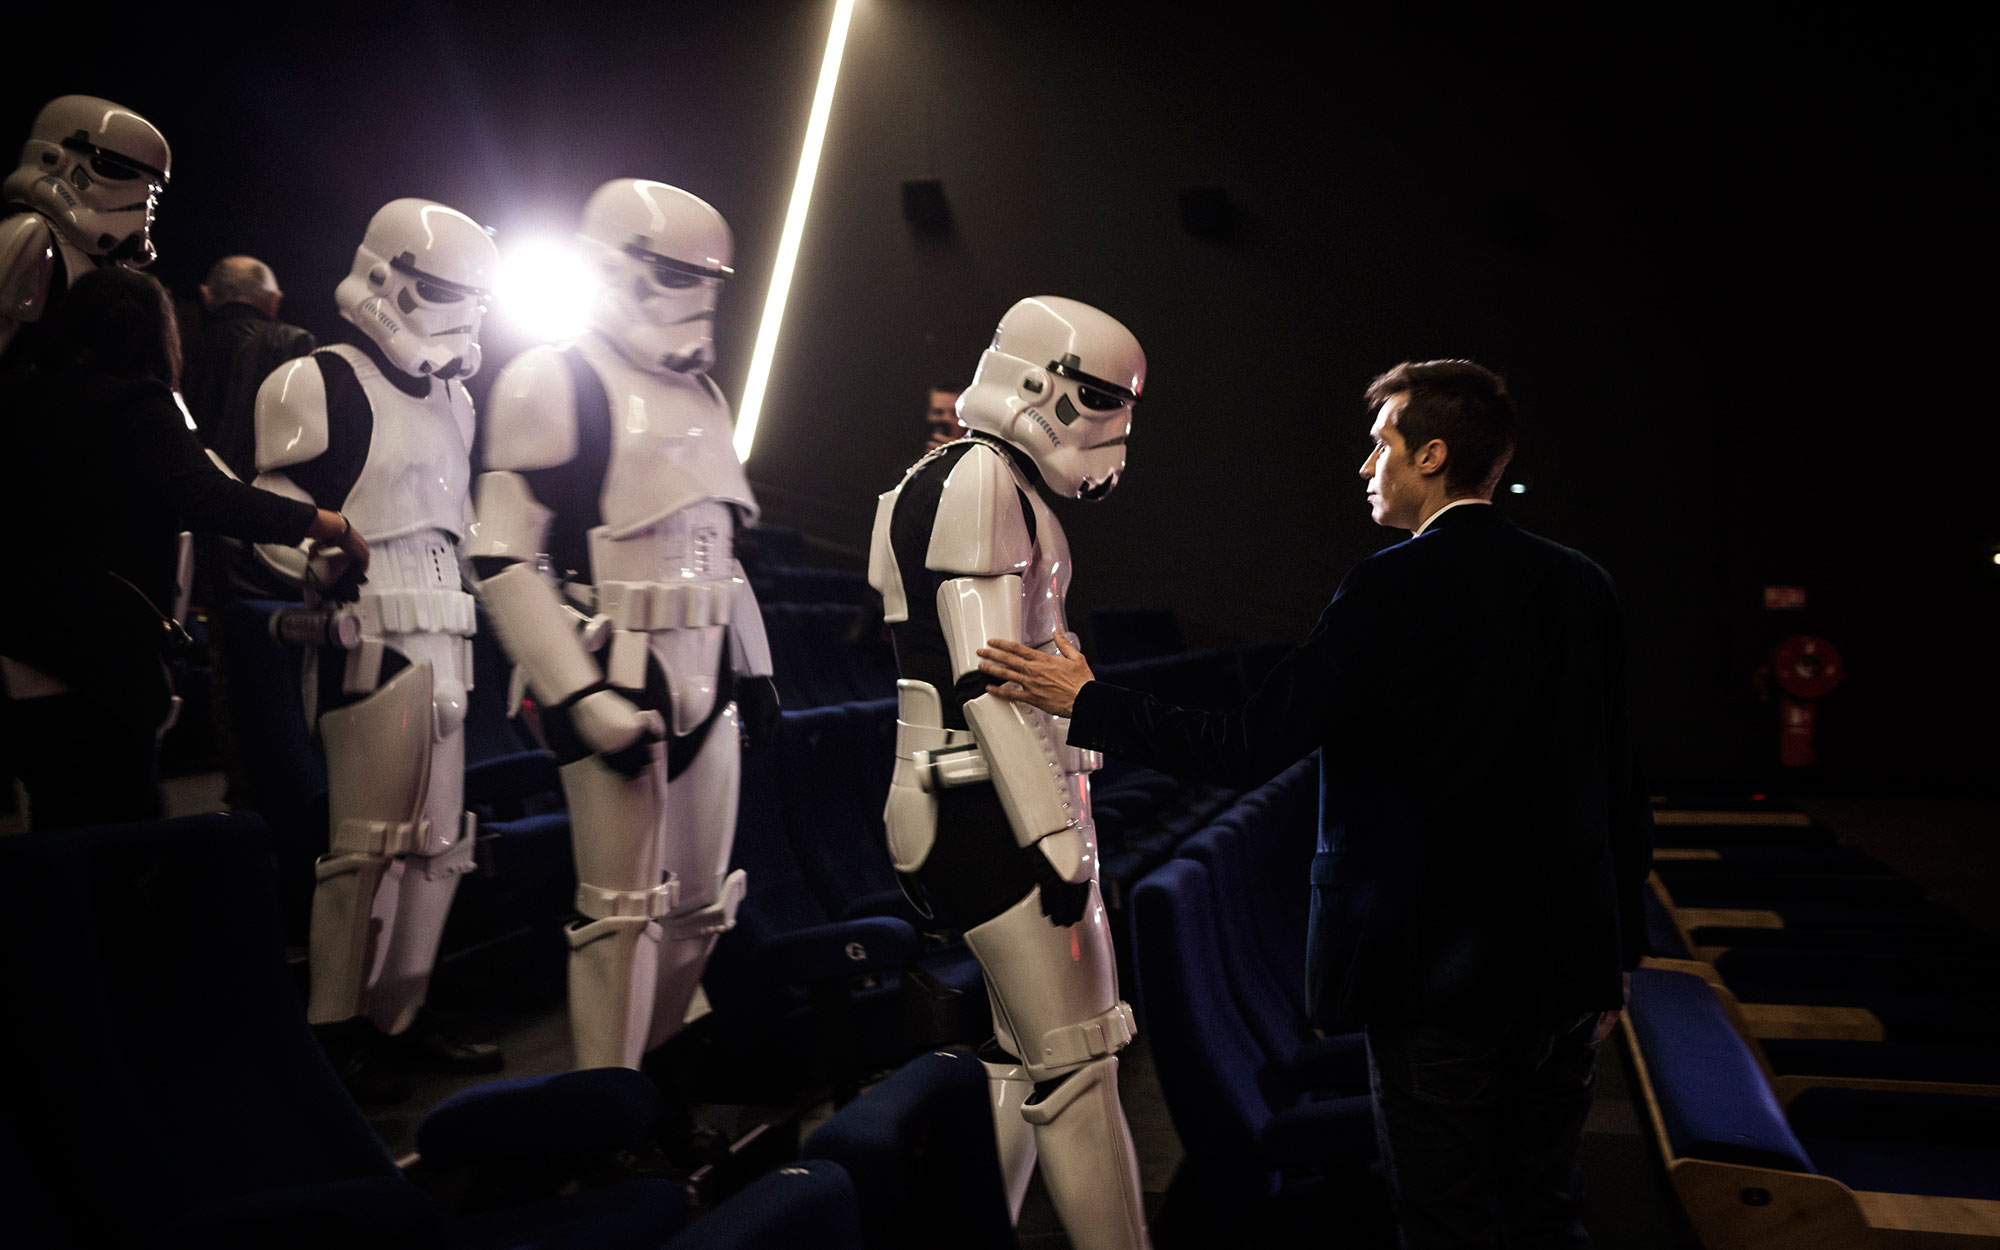 Escorted by a squadron of 4 Imperial Stormtroopers, 63 Star Wars fans from the United States were offered the opportunity of flying into Paris with Air France to see the latest Star Wars movie - The Force Awakens - 2 days before it goes on general release